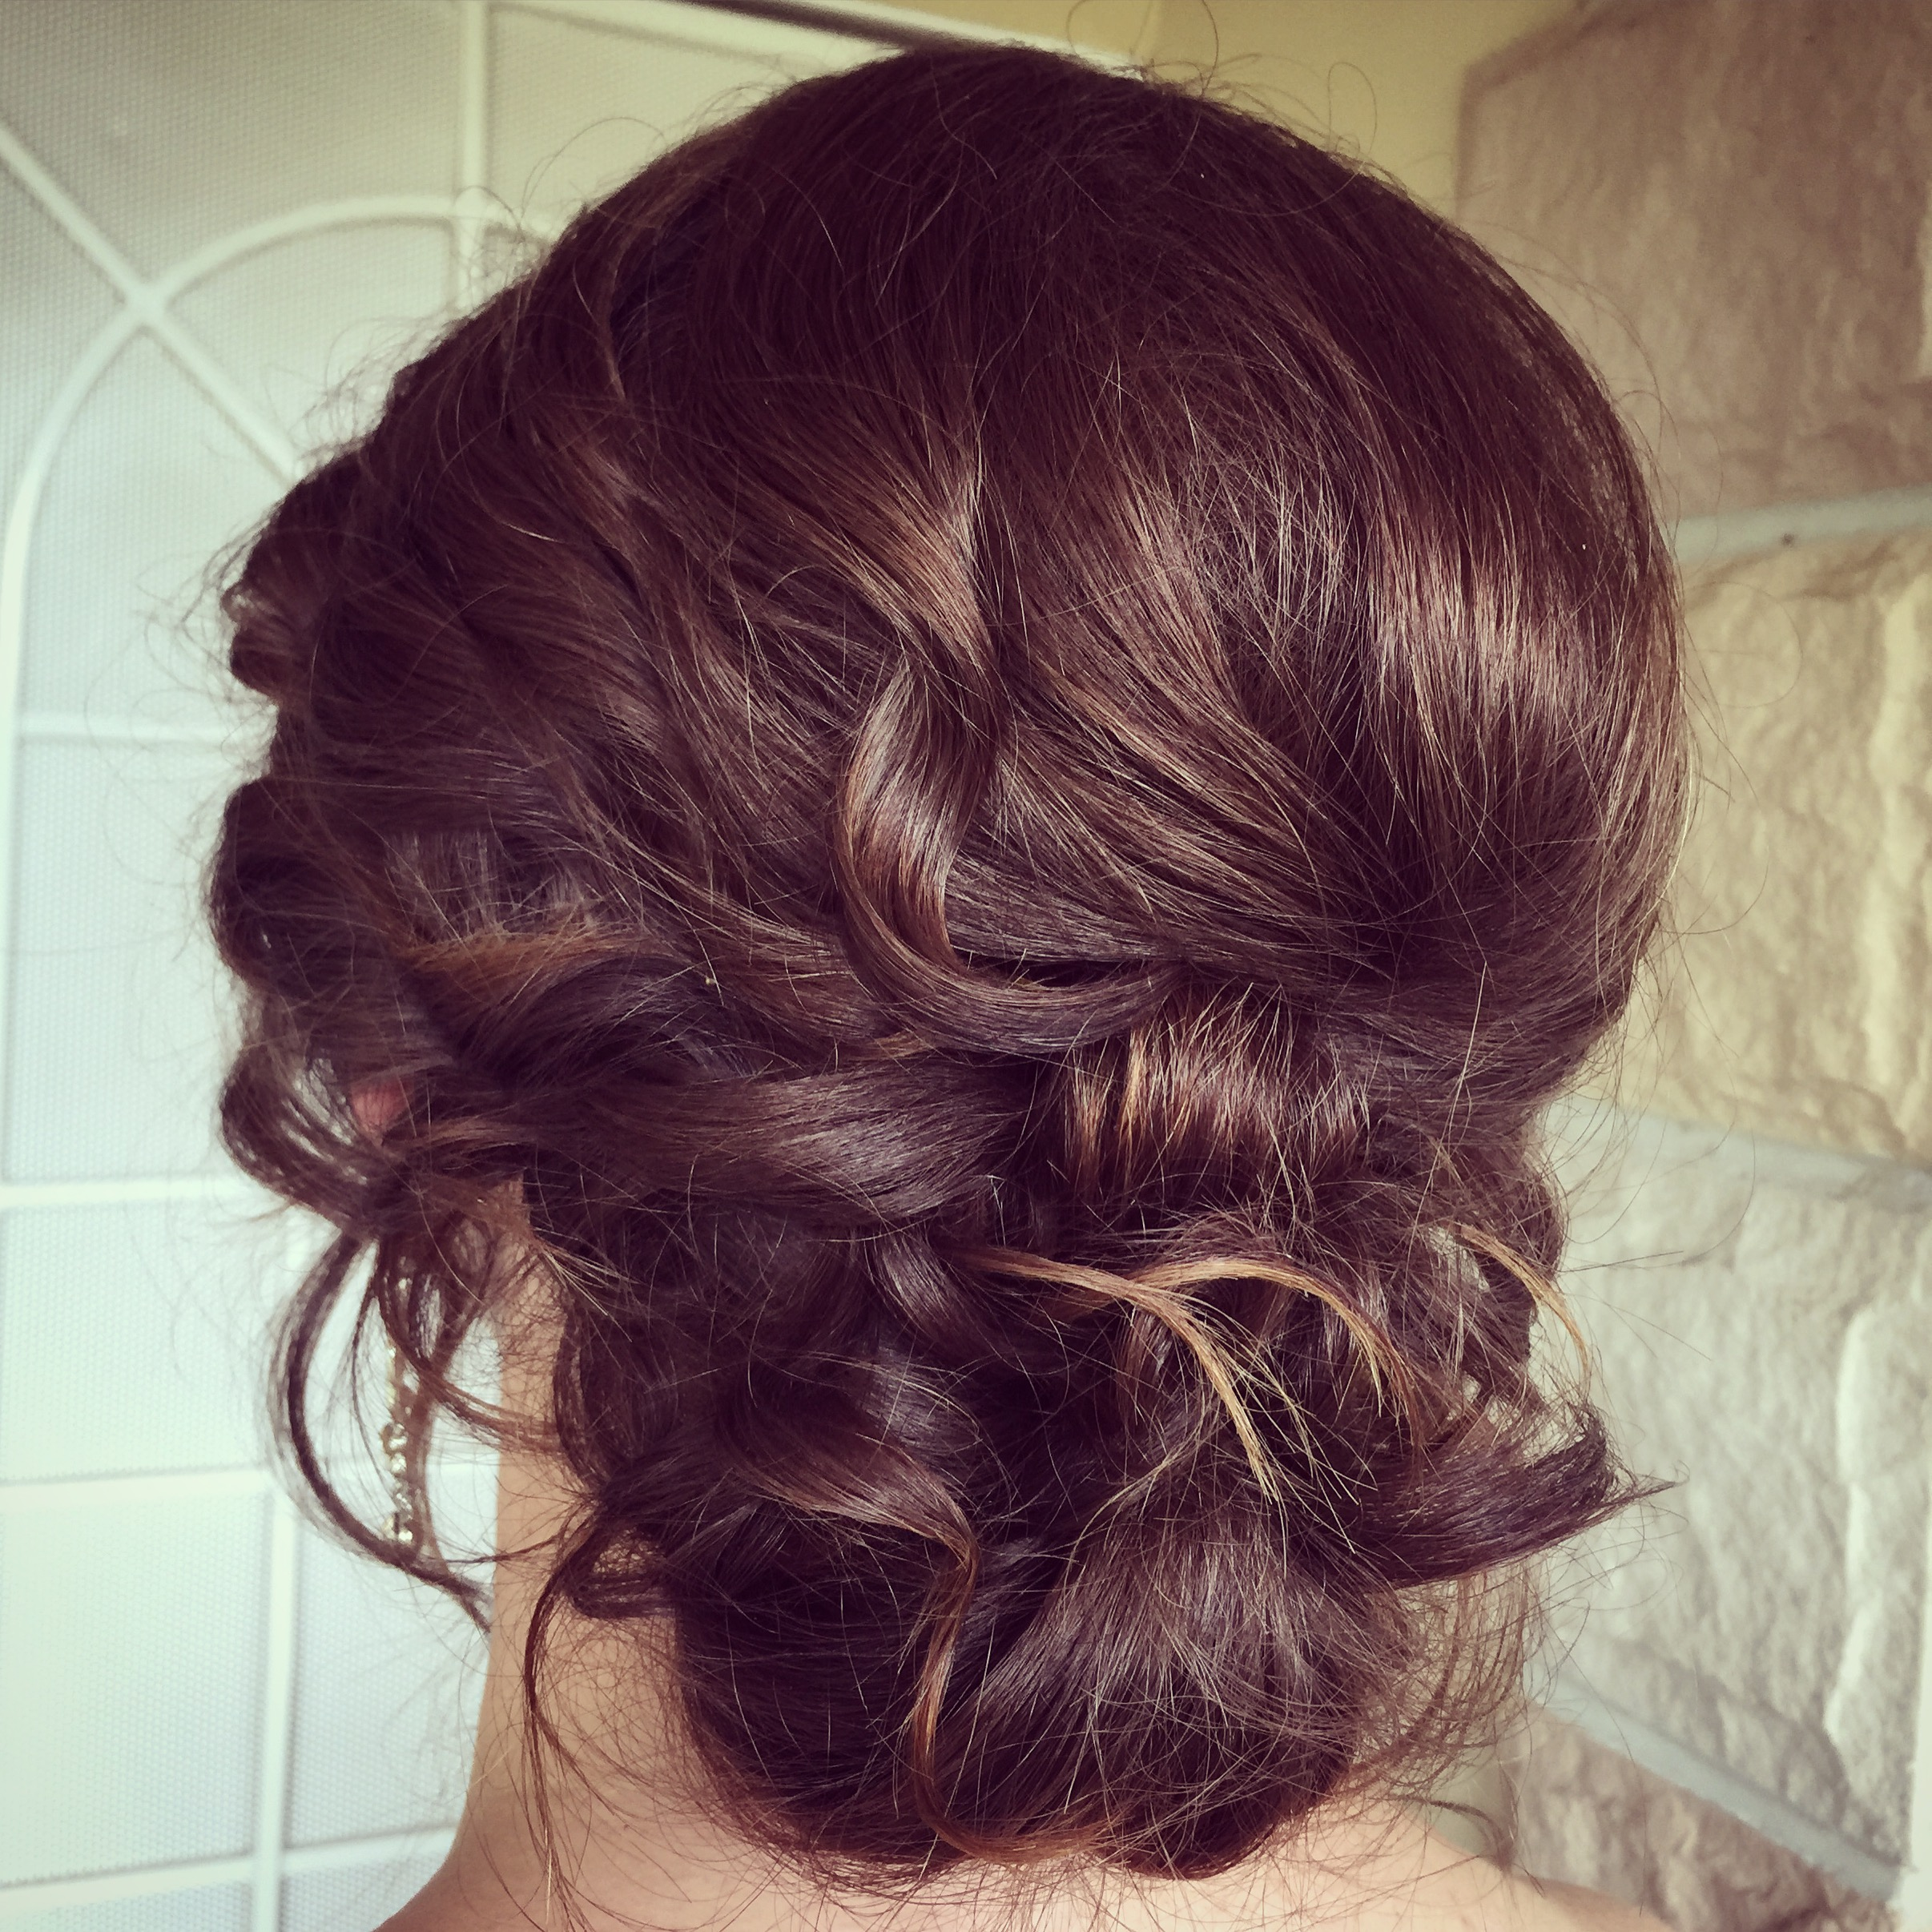 Romantic bridesmaid hairstyle